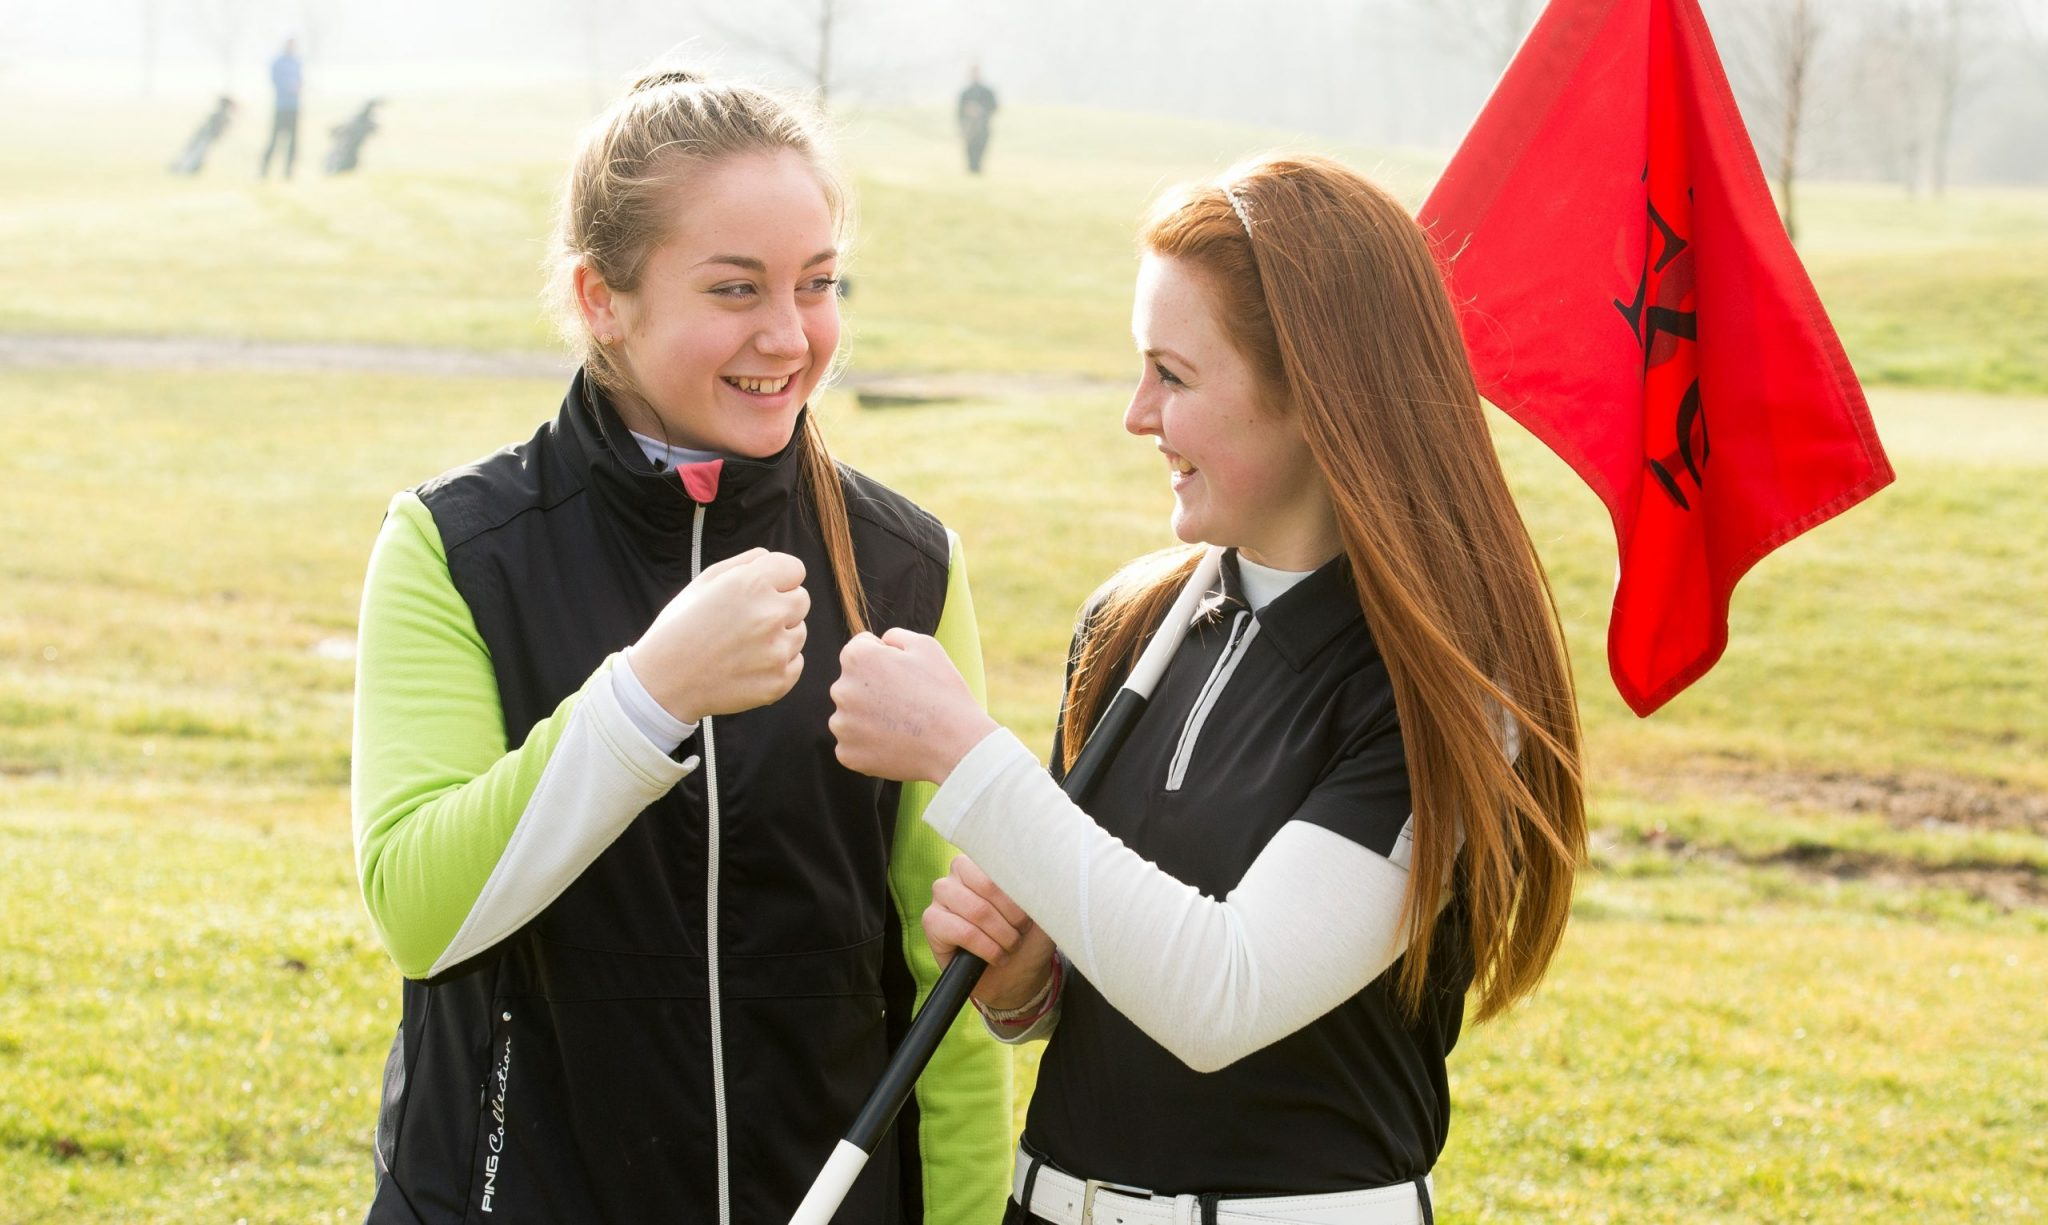 Be a 'buddy' and help your golf club grow